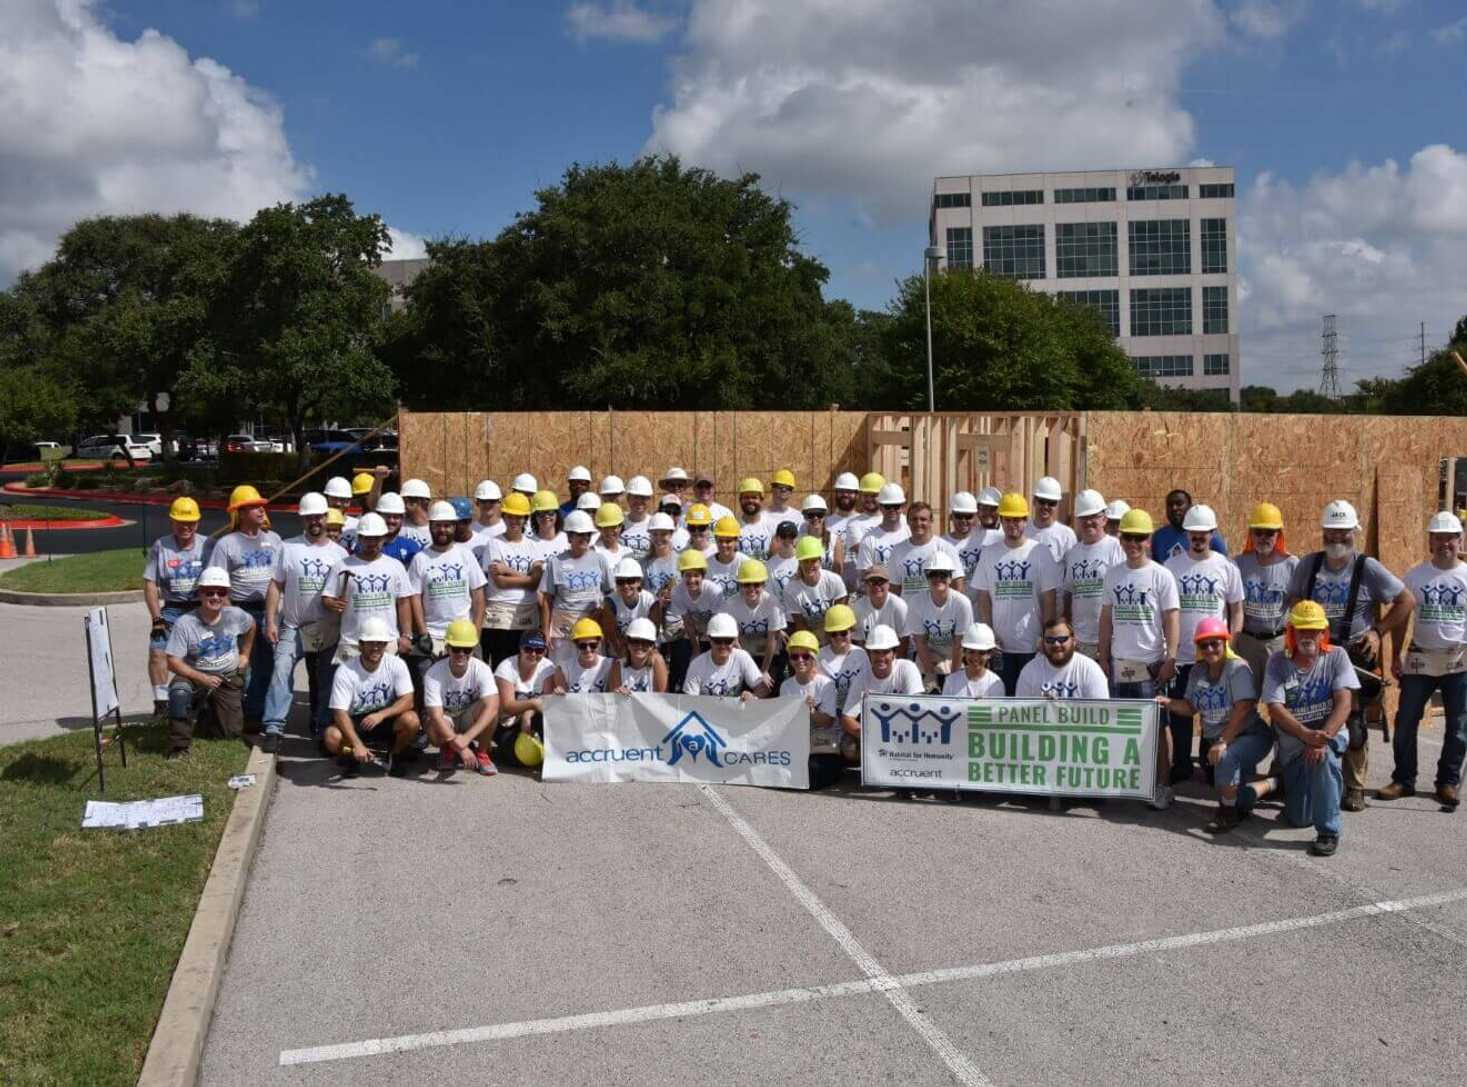 Accruent - Resources - Blog Entries - Accruent Completes Panel Build with Habitat for Humanity - Hero